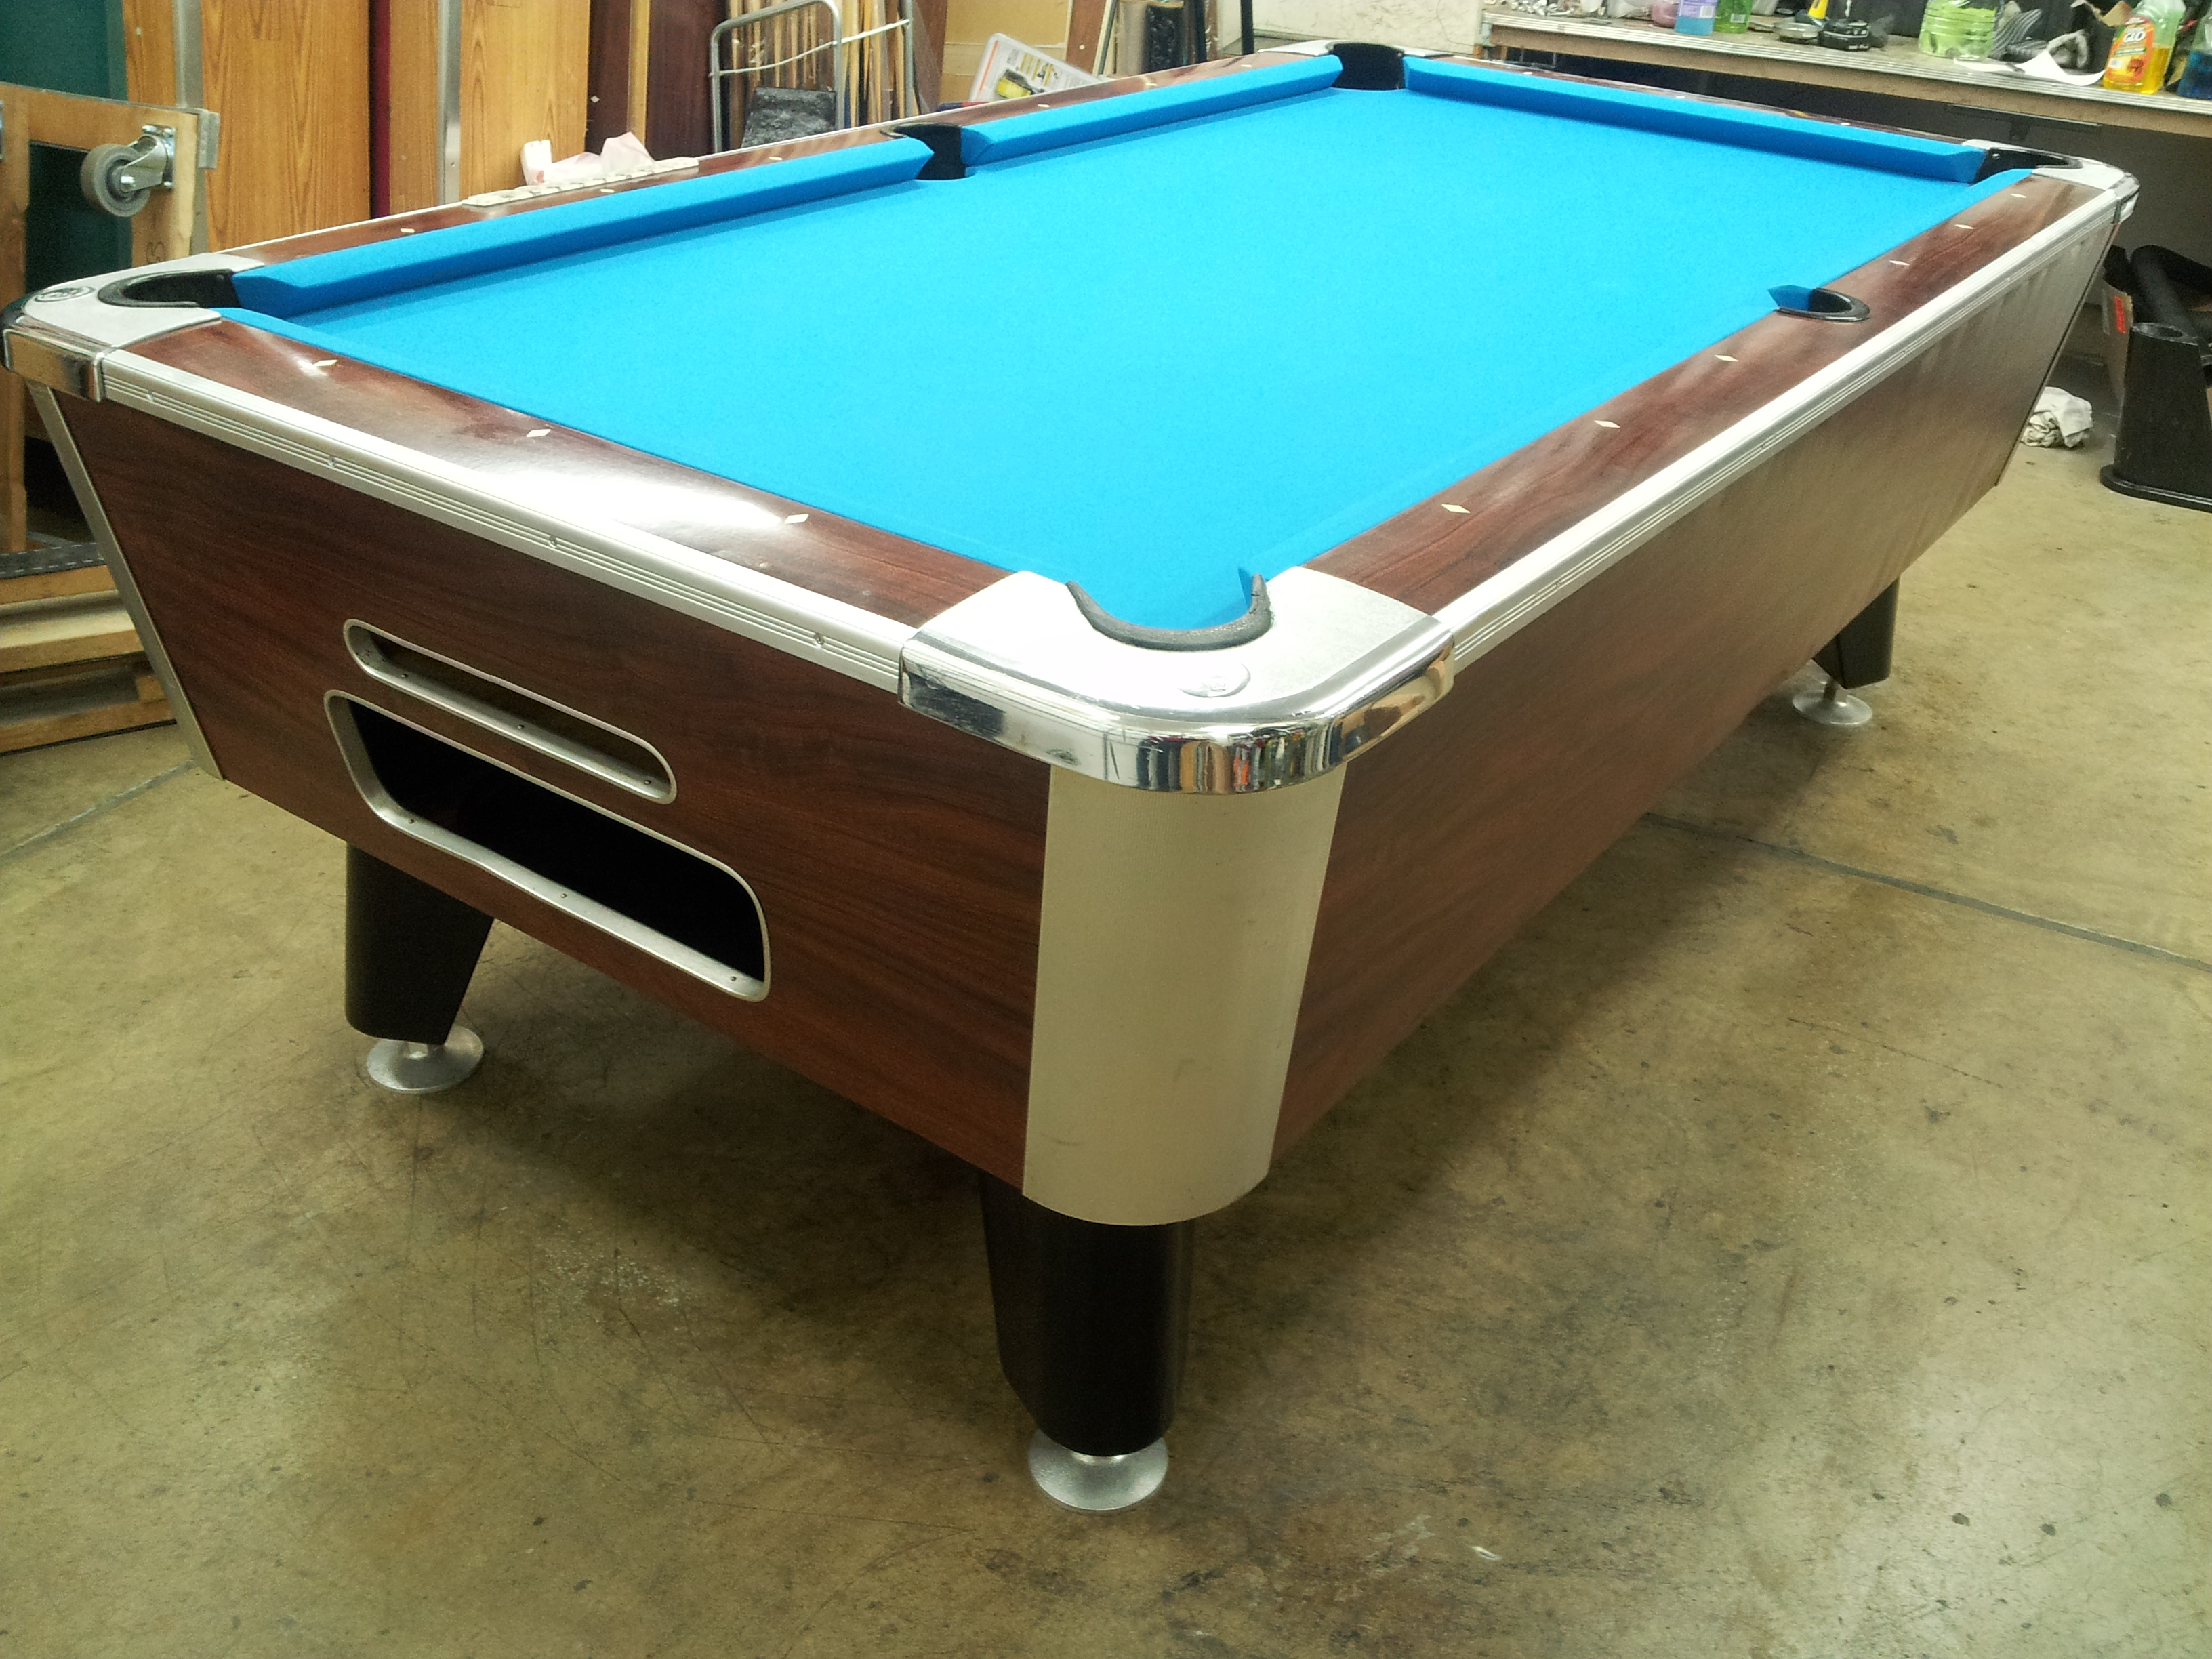 Who Makes this Pool Table with Lights Under the Cushions?